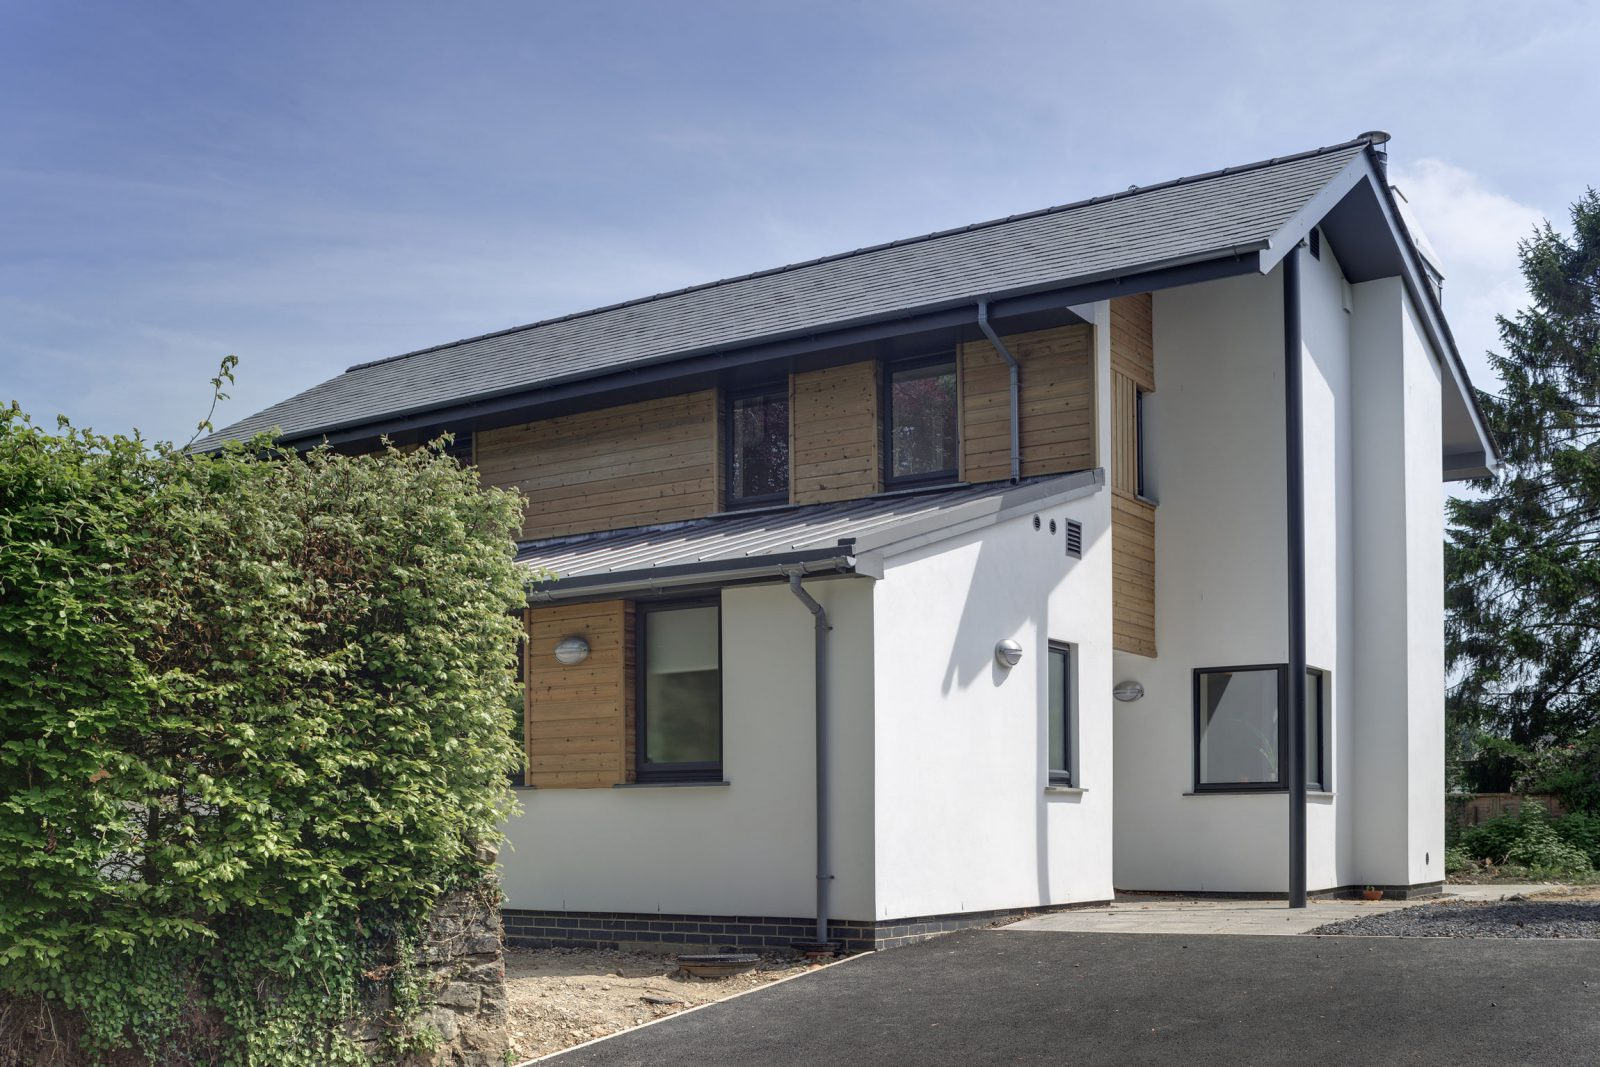 Orchard Lea completes on site – Rud Sawers Architects, Devon